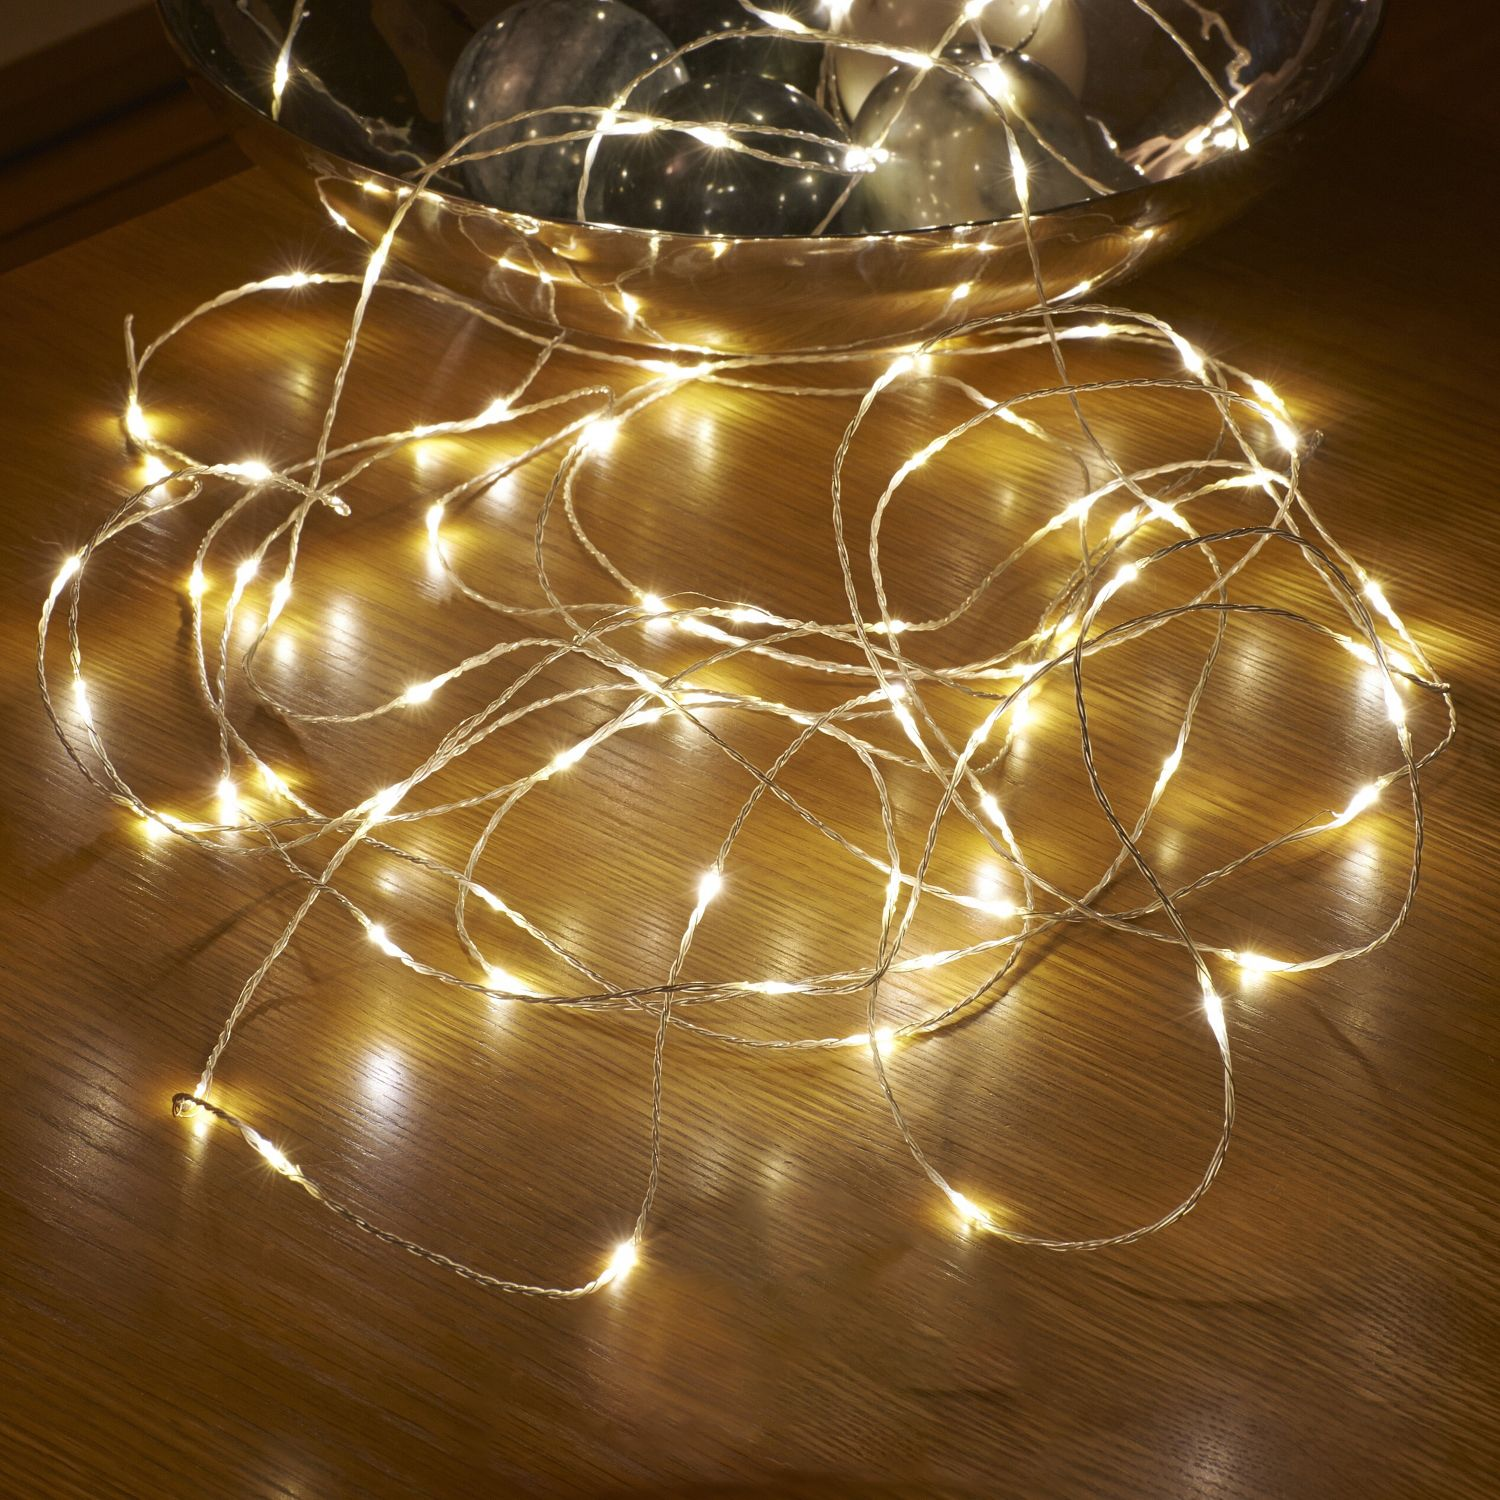 Micro Led String Lights Micro Led String Lights  Battery Operated  Remote Controlled